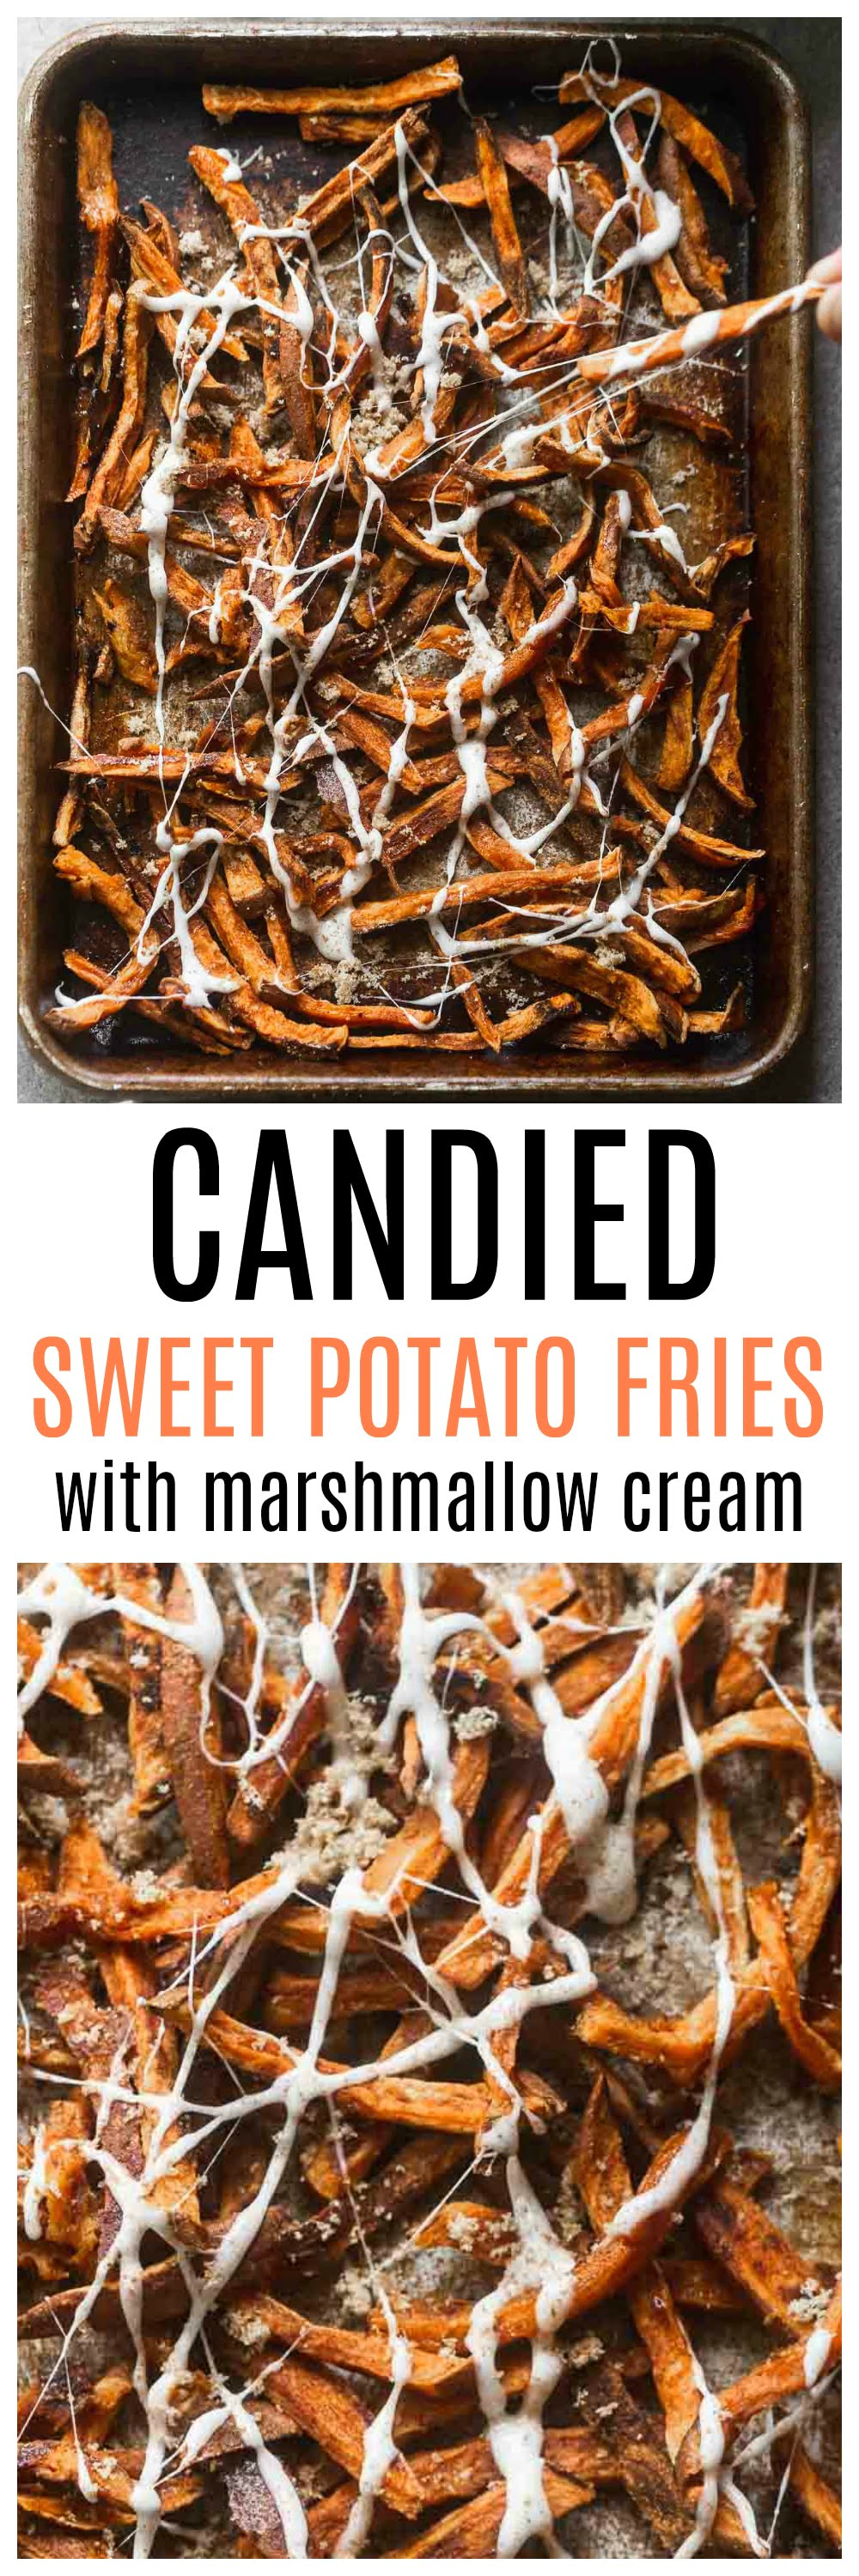 Candied Sweet Potato Fries with Marshmallow Cream